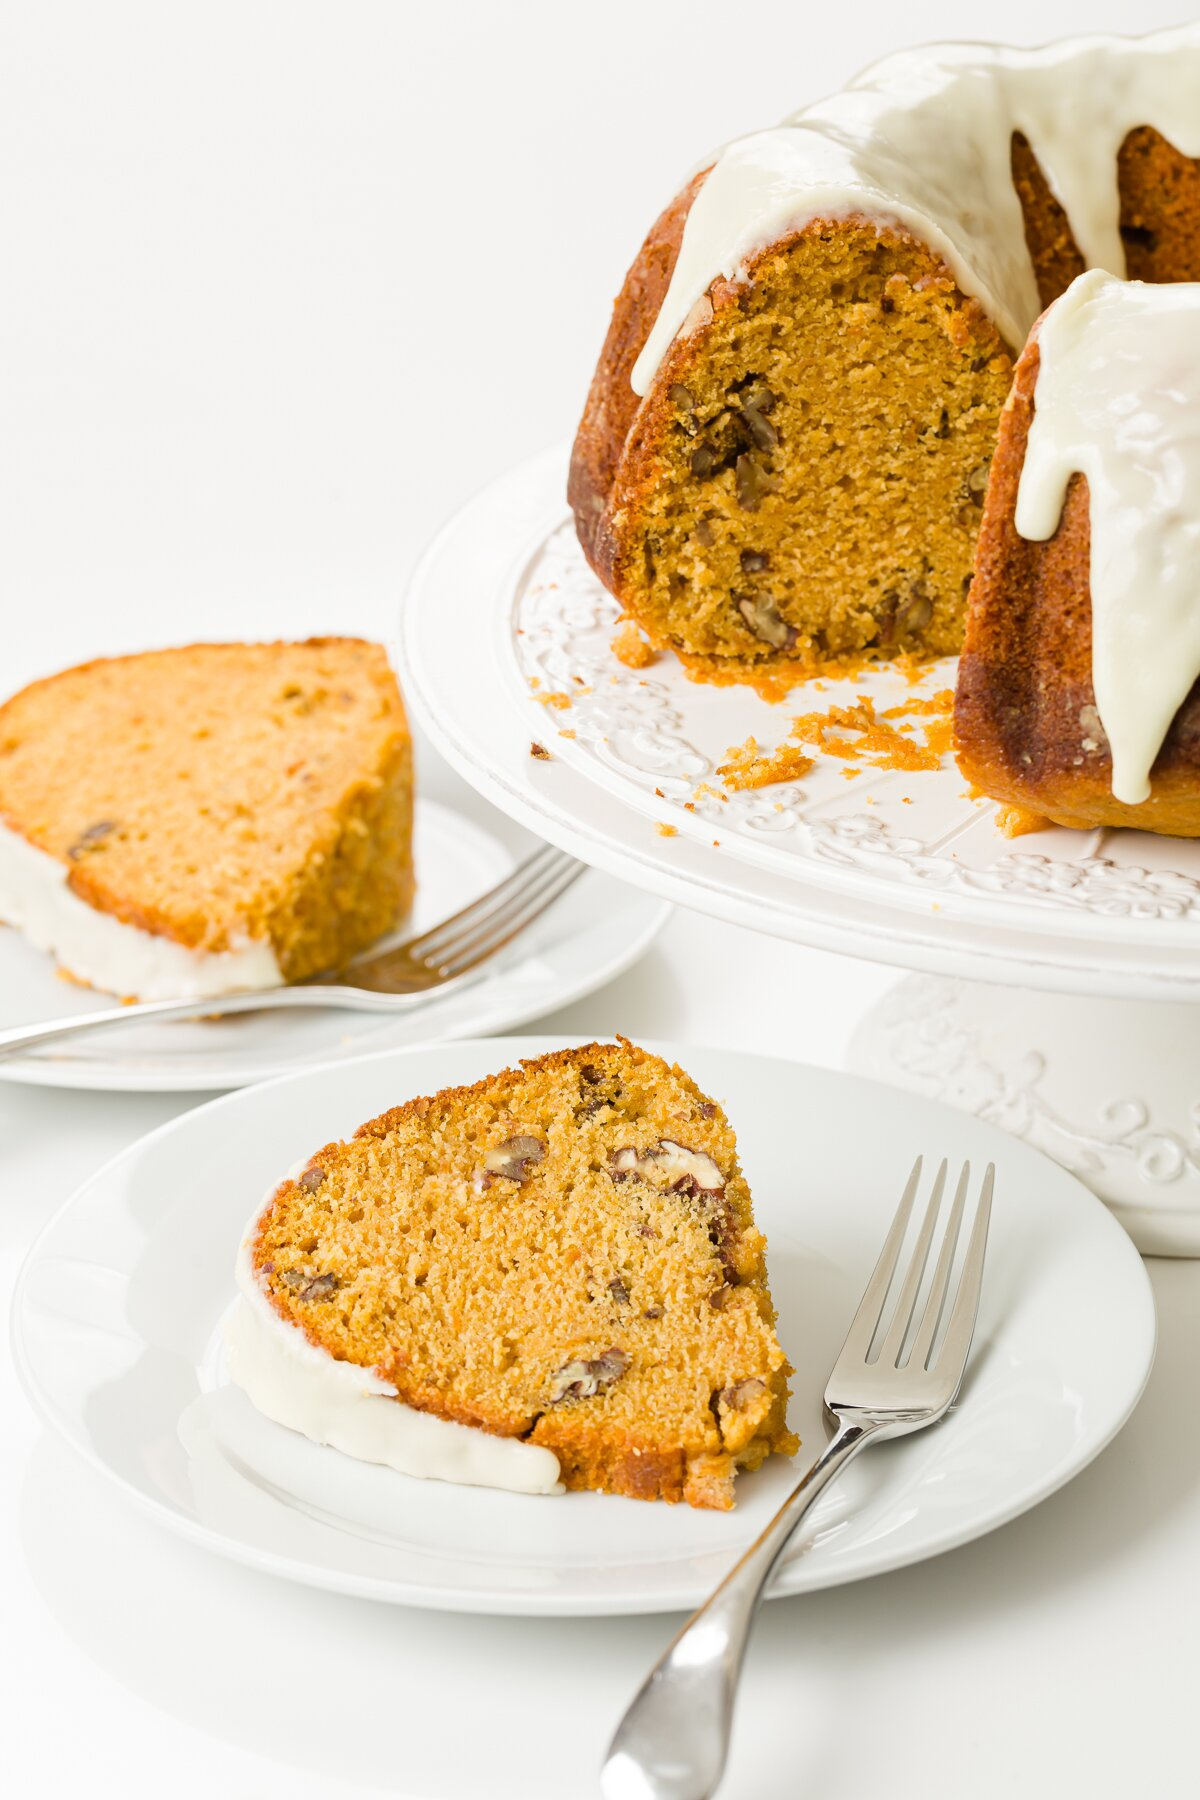 Glazed sweet potato cake on a cake stand with several pieces on white plates in front of it